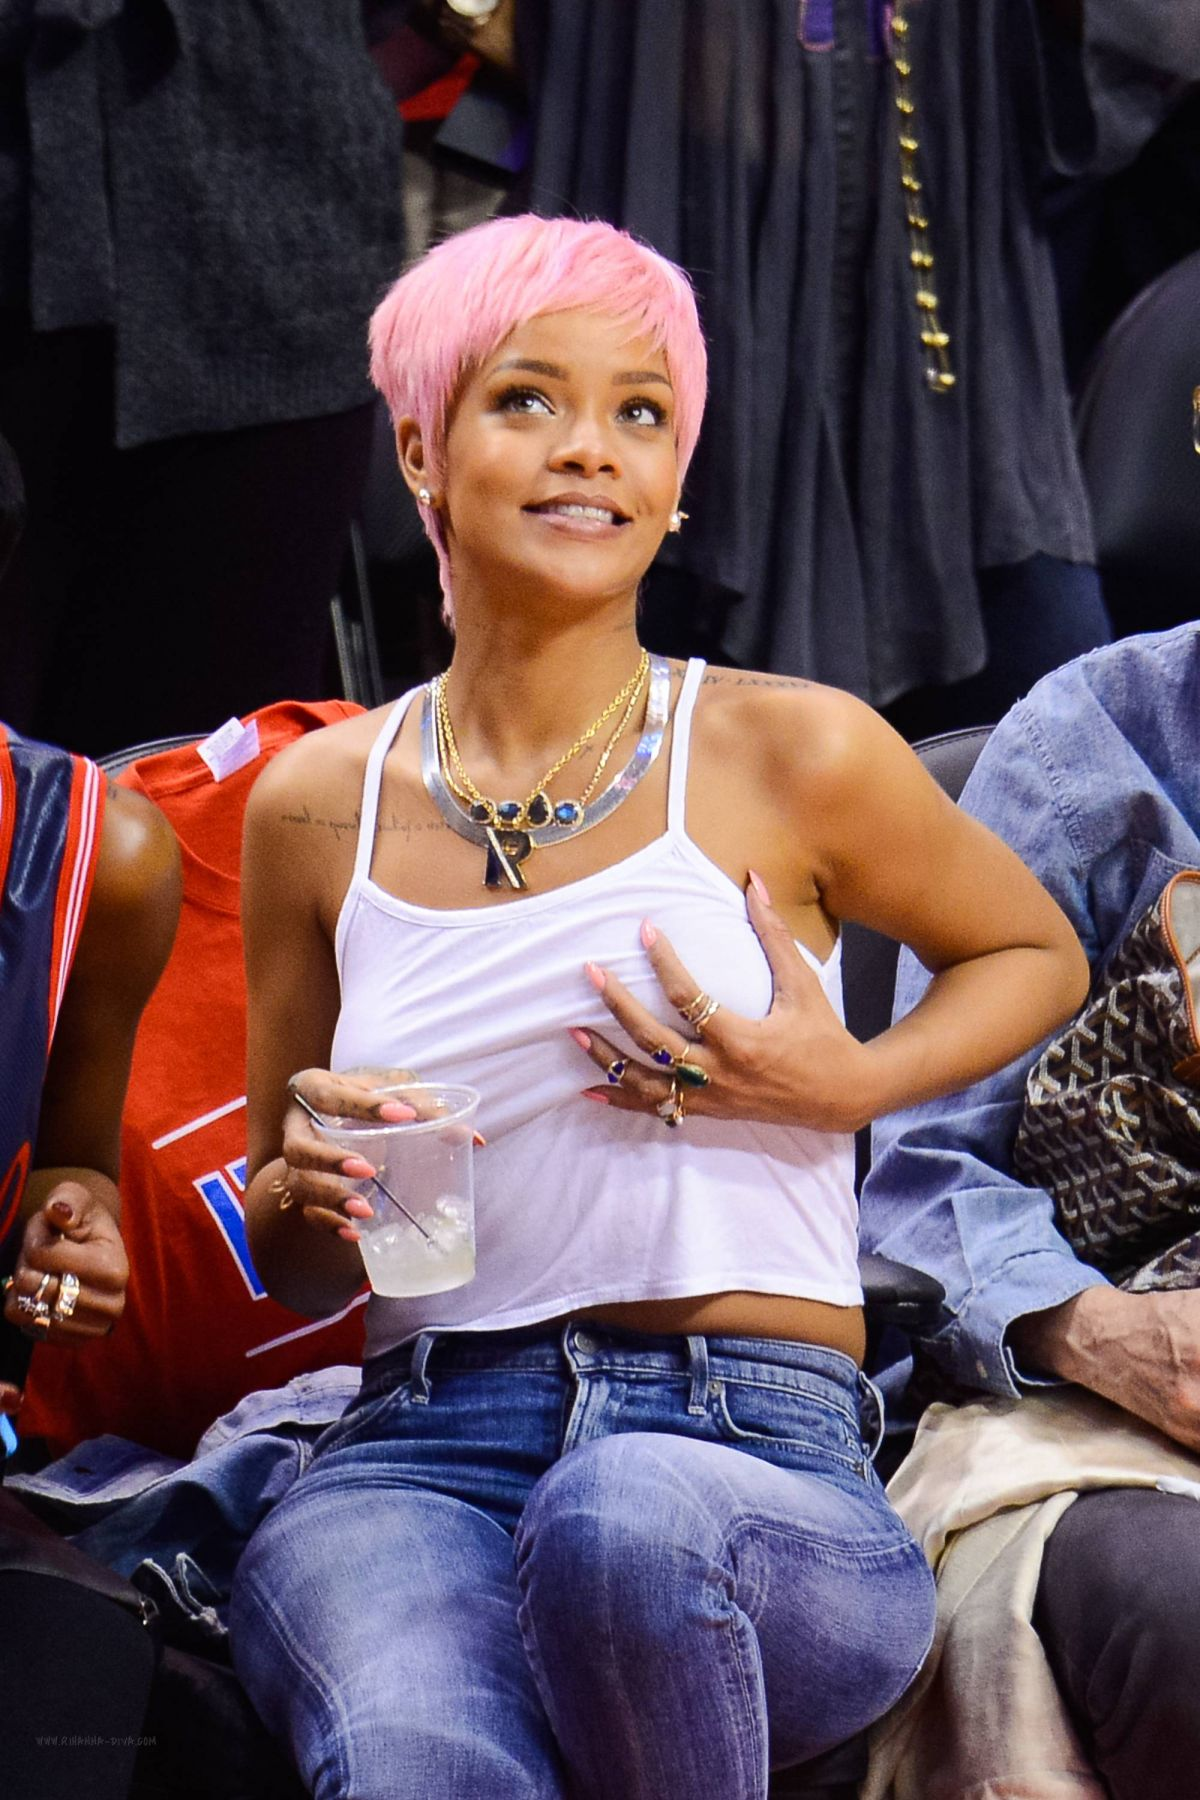 RIHANNA Shows Pink Hair at the Clippers Game in Los Angeles